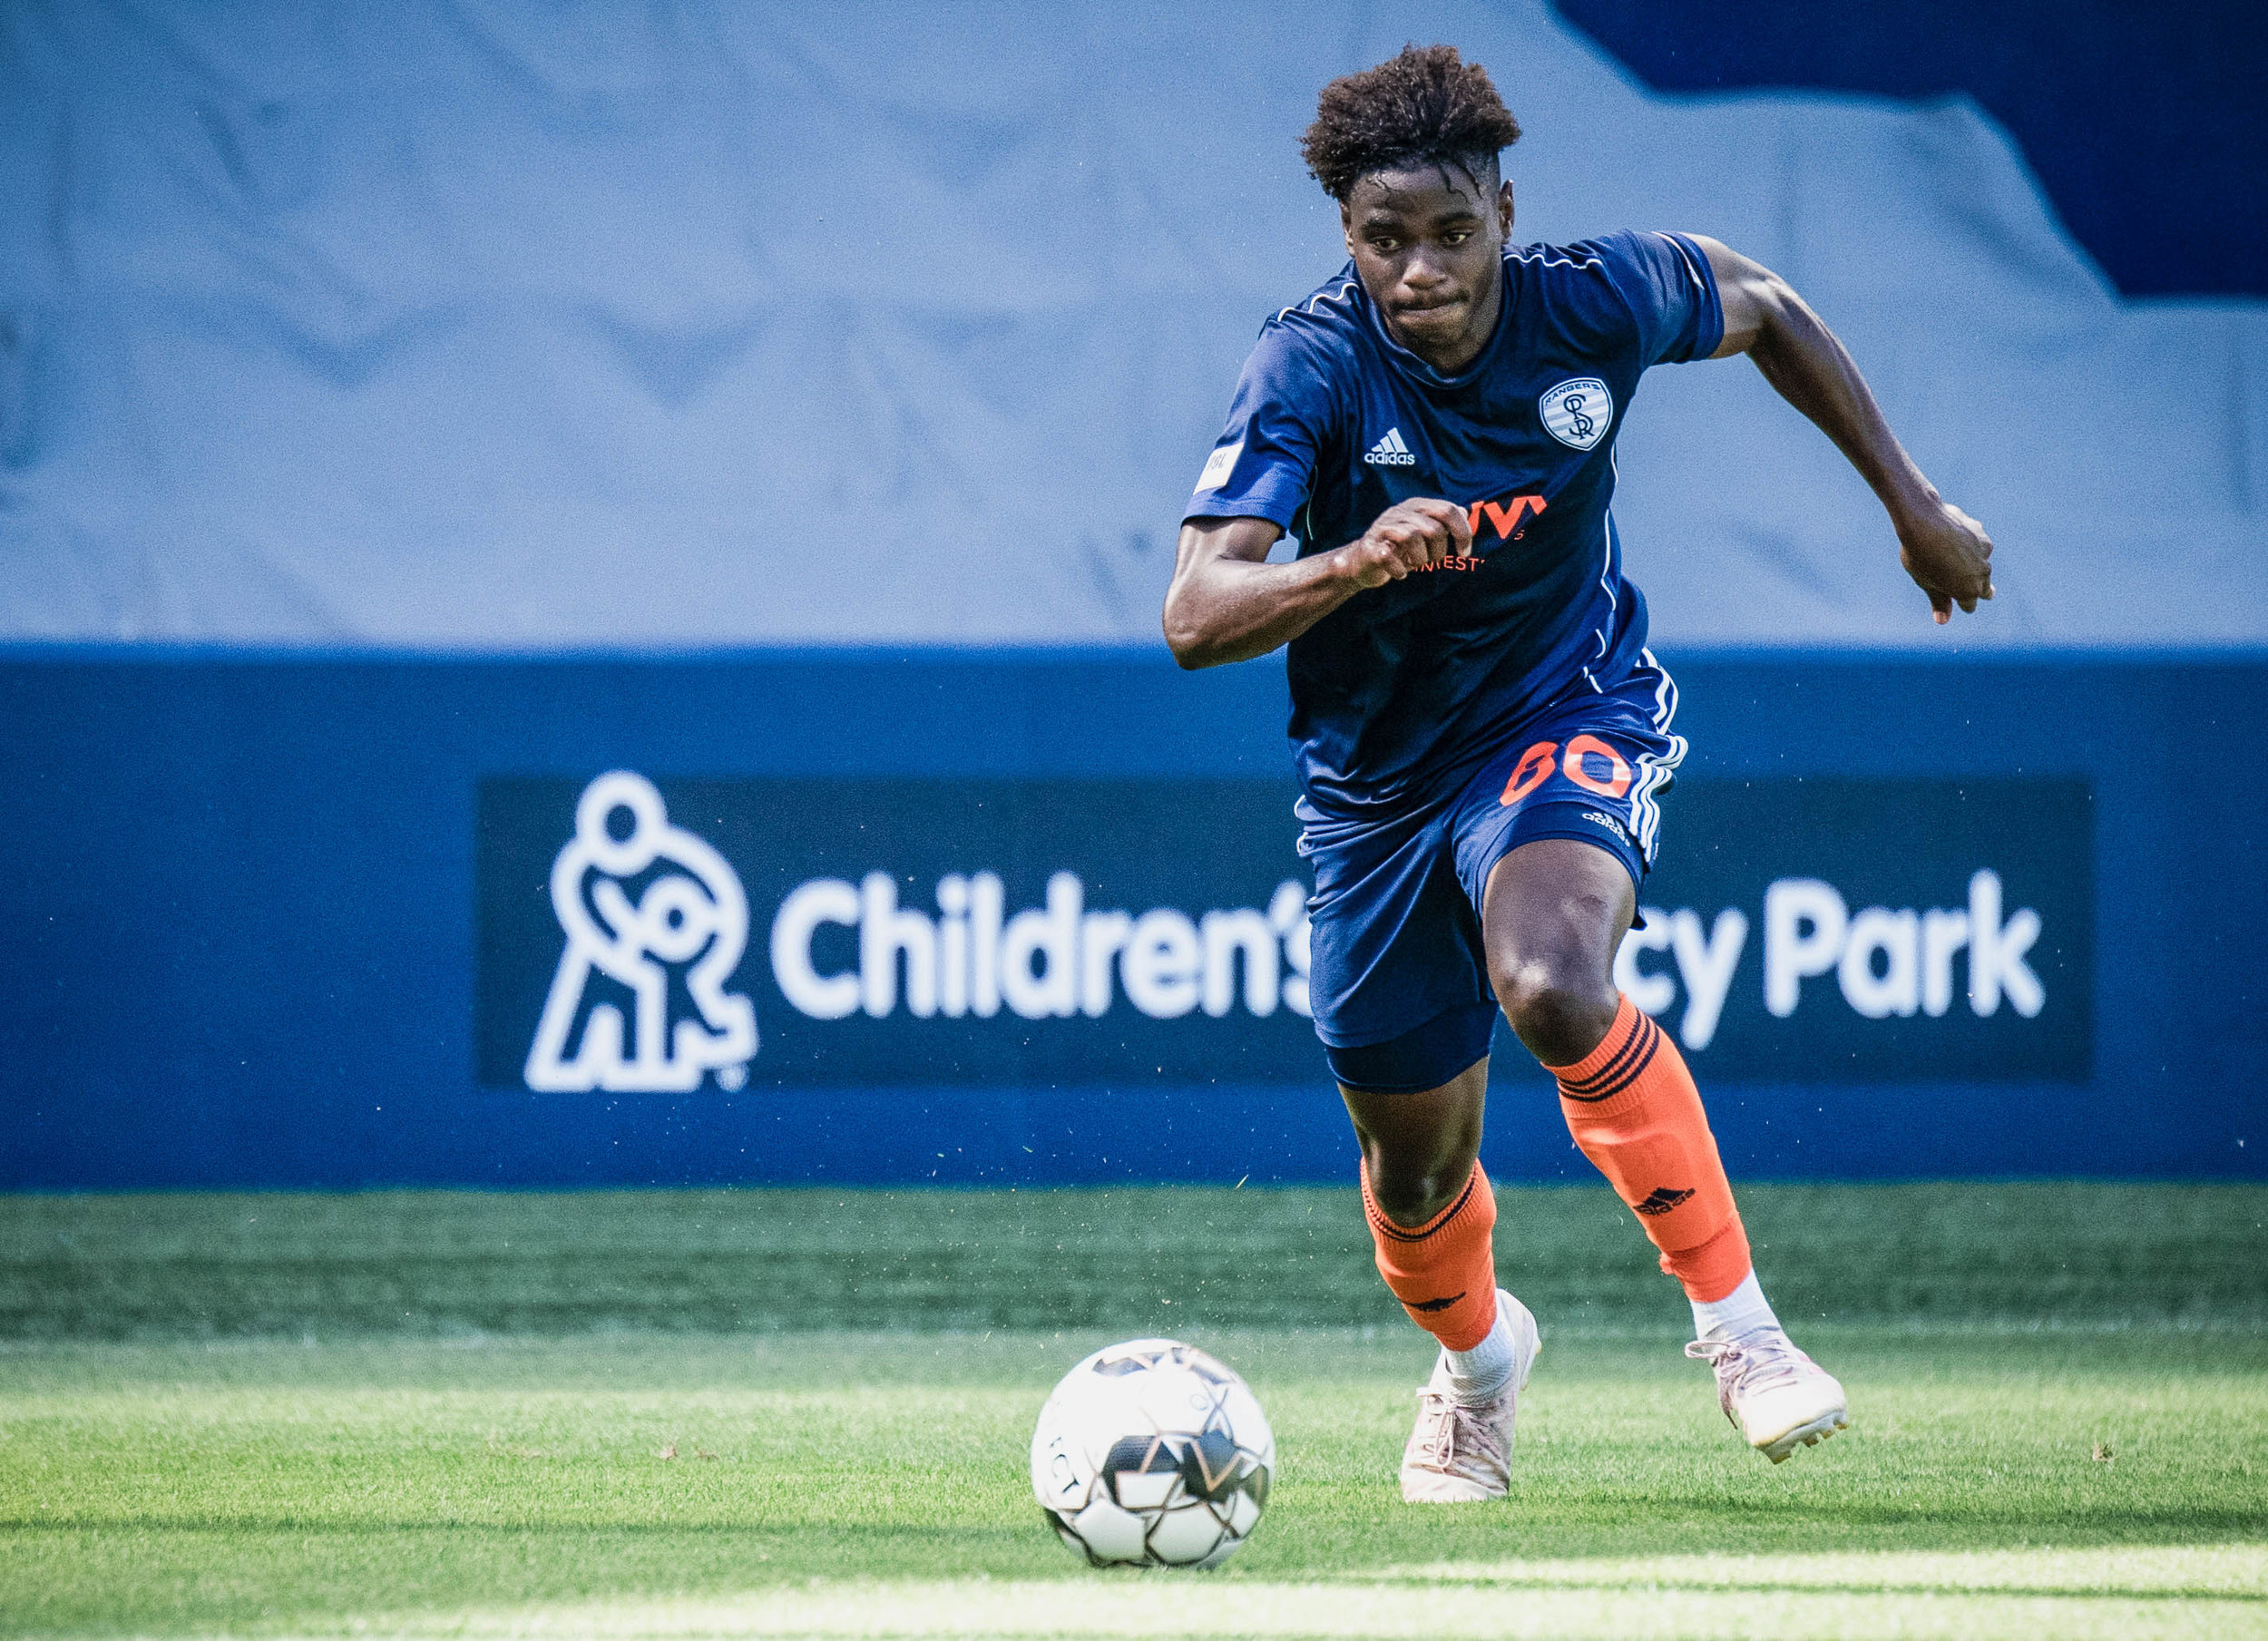 Swope Park Rangers - Team Photographer (June 2019 - July 2019)Swope Park Rangers are a professional soccer club playing in the USL located in Kansas City, Kansas. Swope Park is a direct affiliate of Sporting KC.